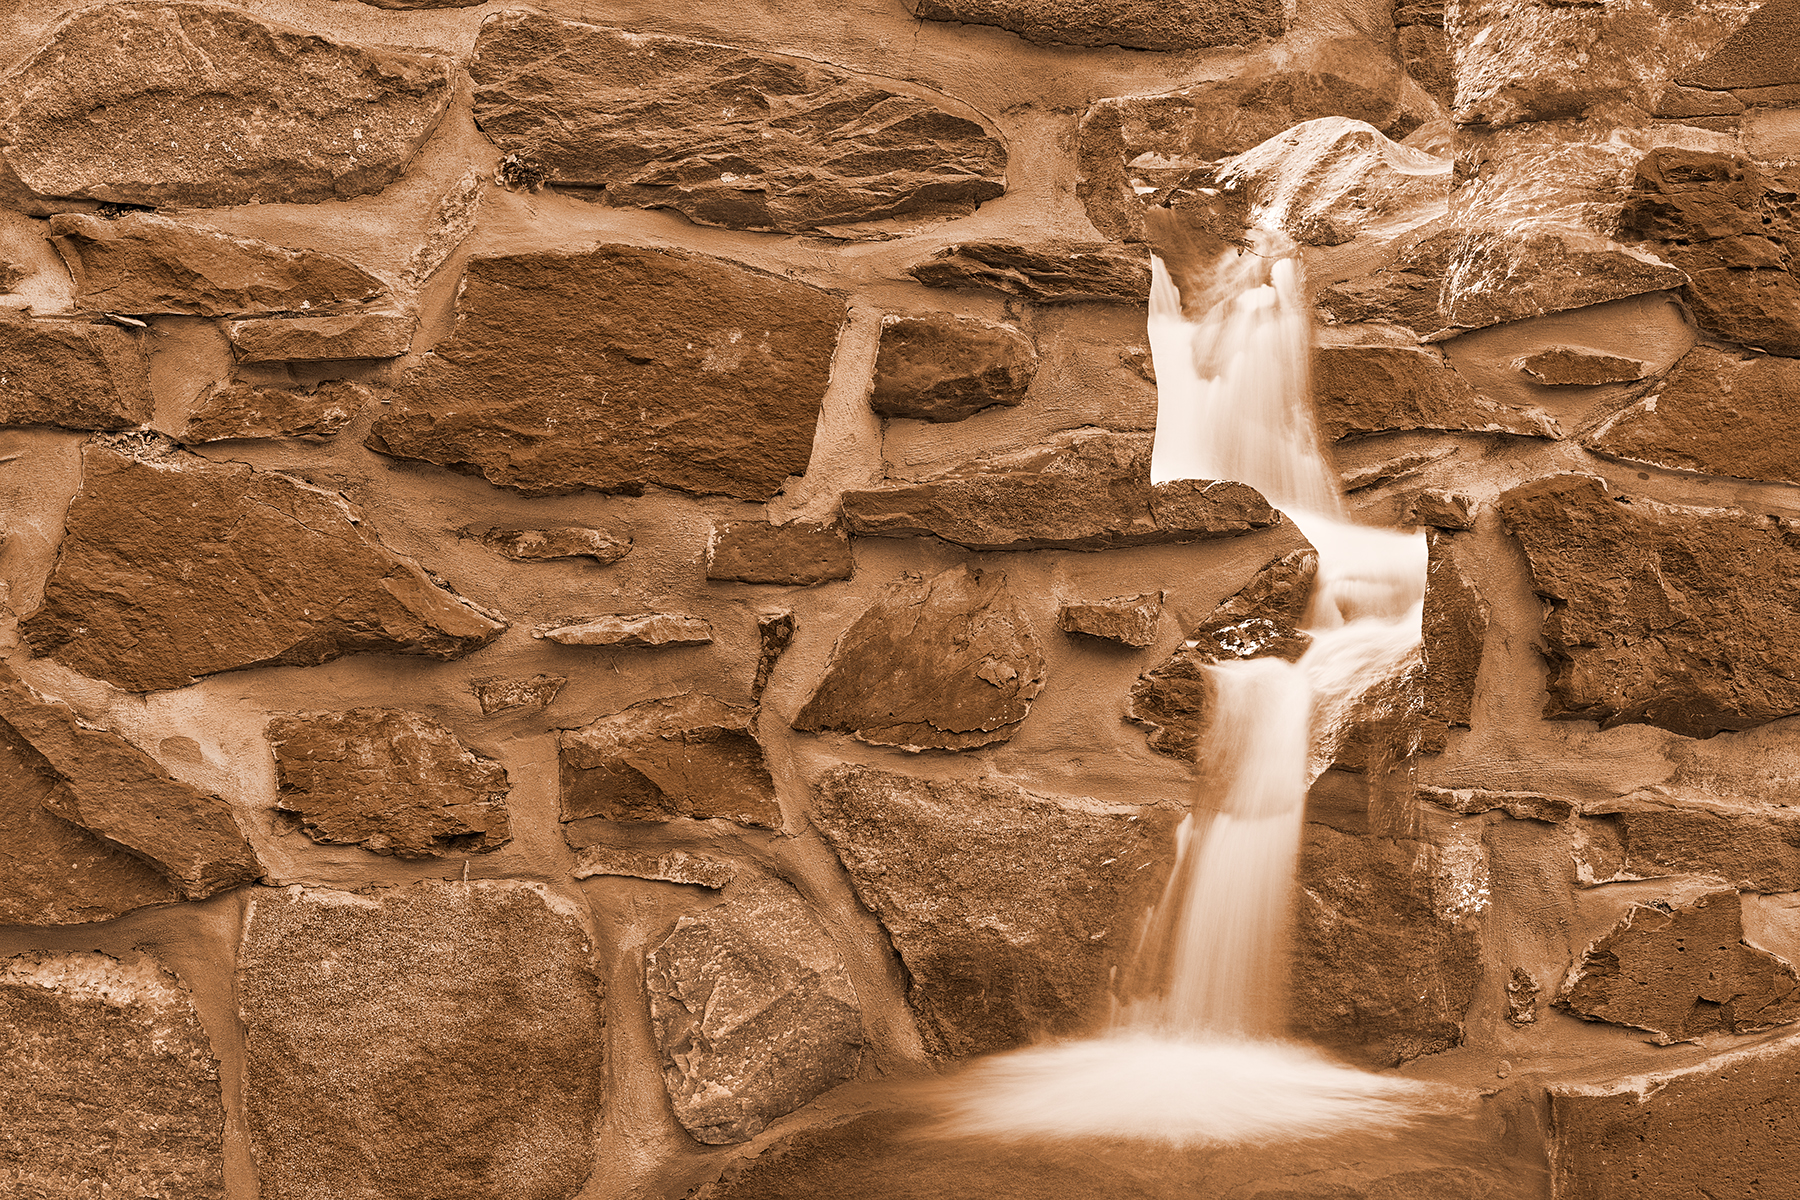 Jarboes Wall Waterfall, Abstract, Outdoors, Rough, Rocky, HQ Photo